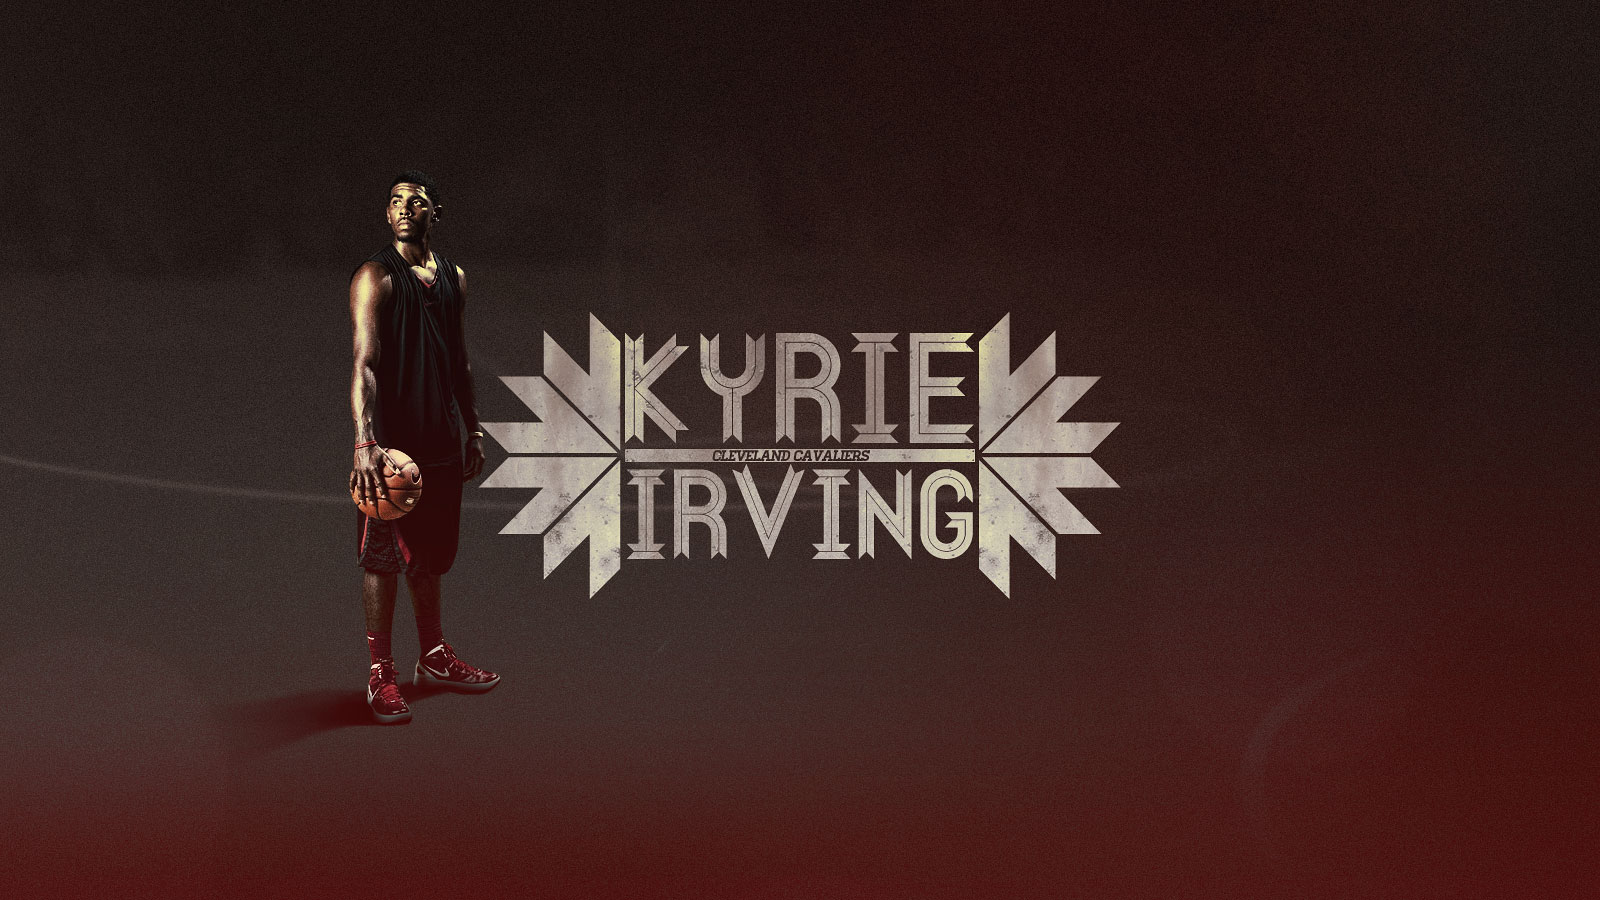 Kyrie Irving Cleveland Cavaliers 1600x900 Wallpaper